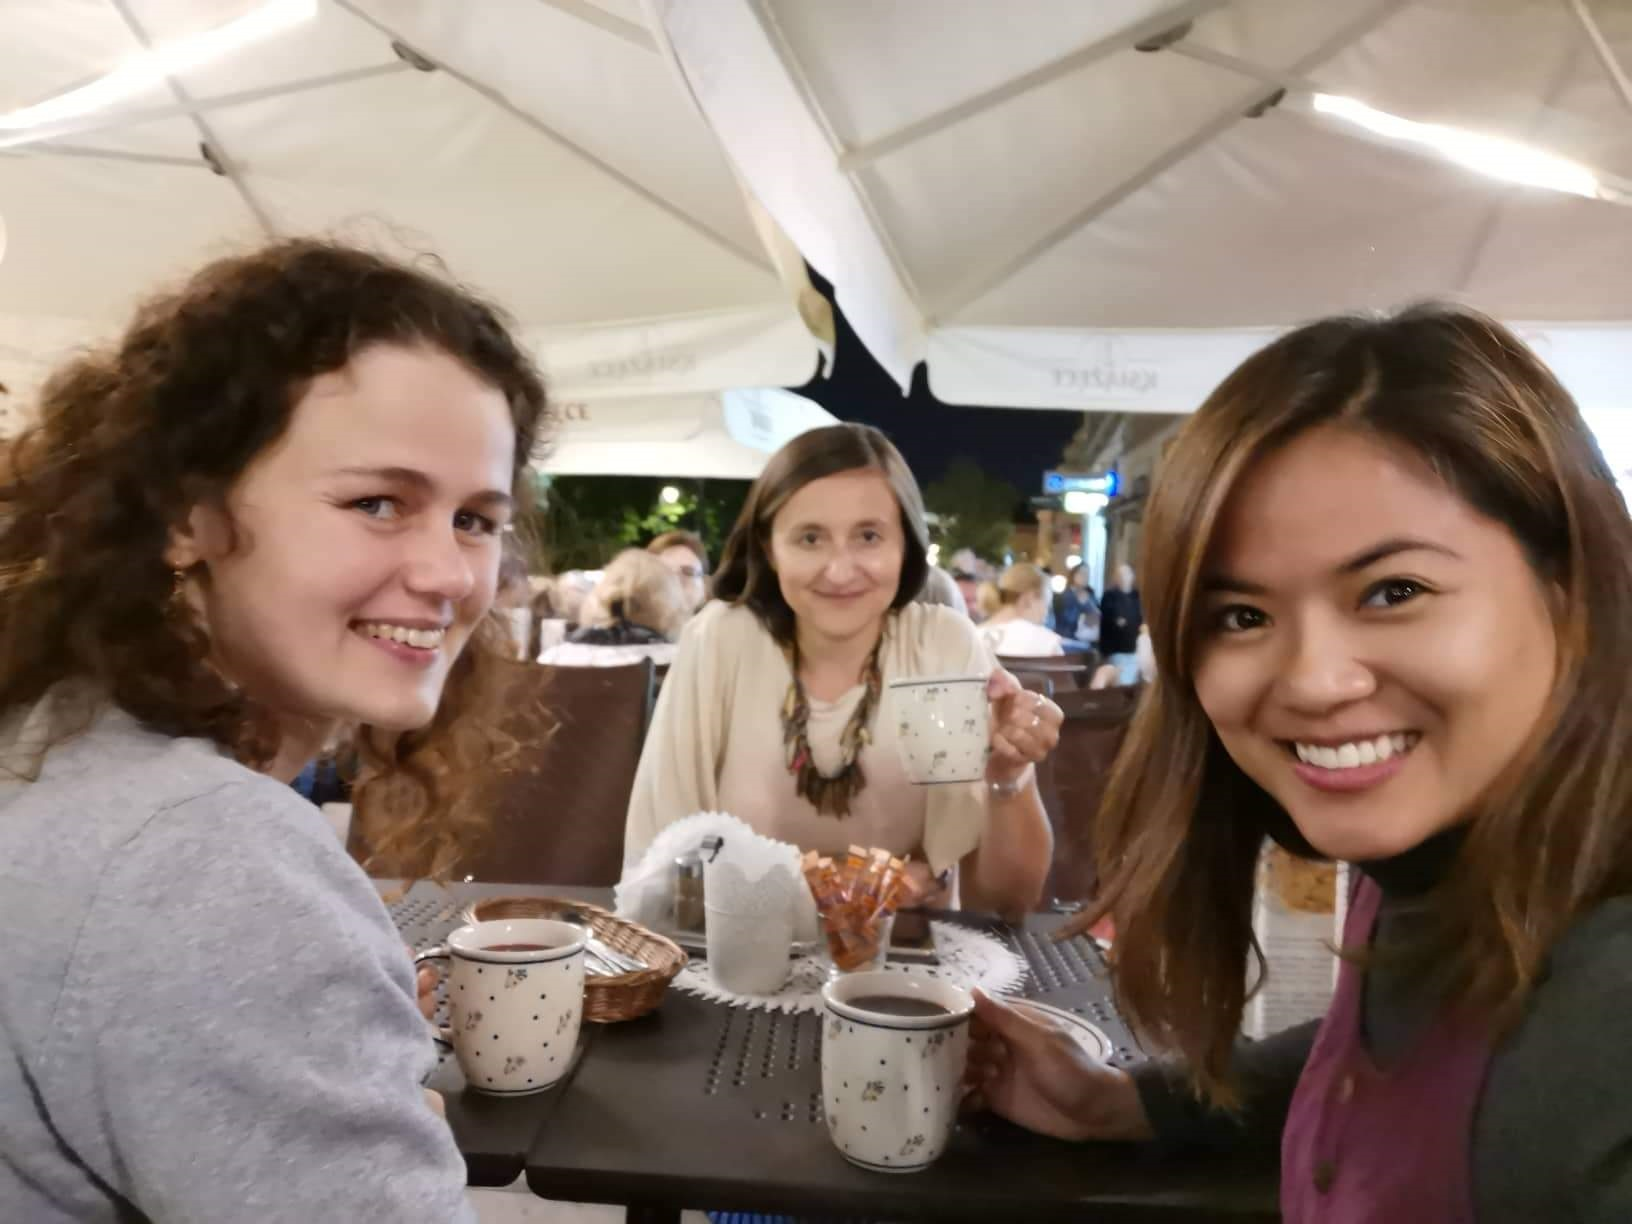 Step in Warsaw - City guide to Warsaw. A lovely tourist from Philippines is experiencing Warsaw in the company of two lovely residents of Warsaw:). A farewell dinner. Traditional Polish food served on Polish folk pottery dishes. Warsaw, 23.07.2019.